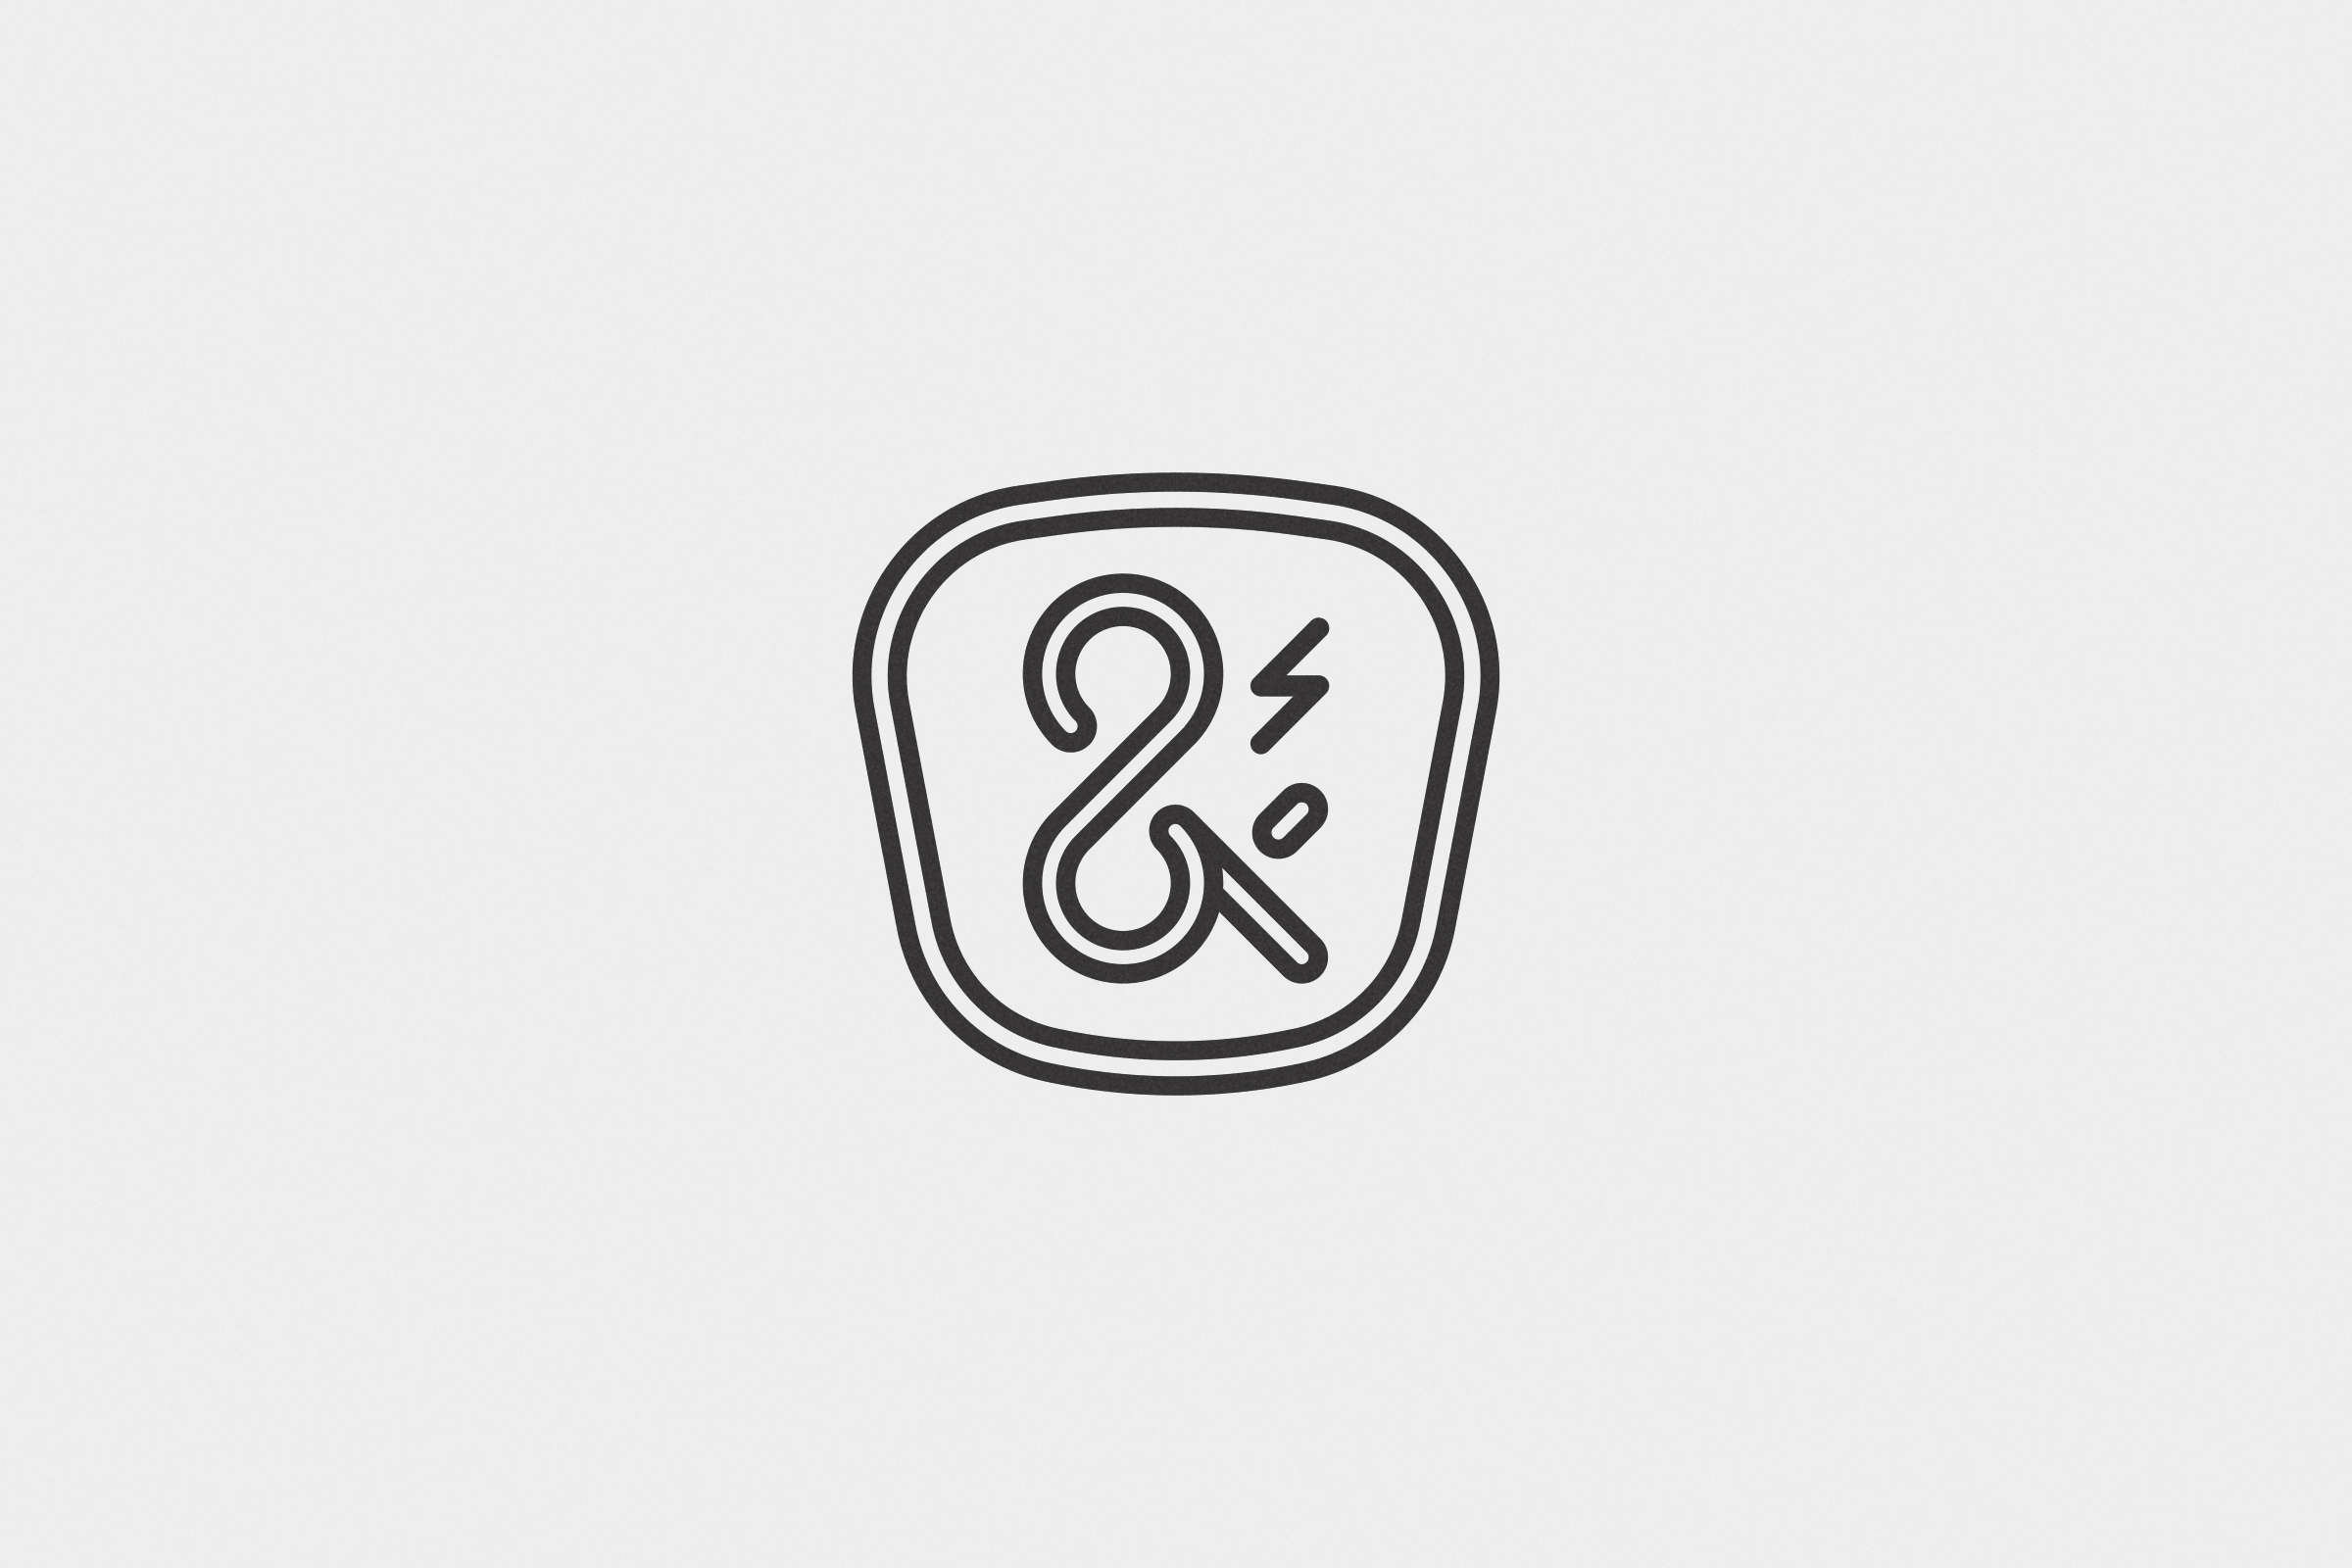 TBS_LogosAndMarks_AmpersandAmps_1